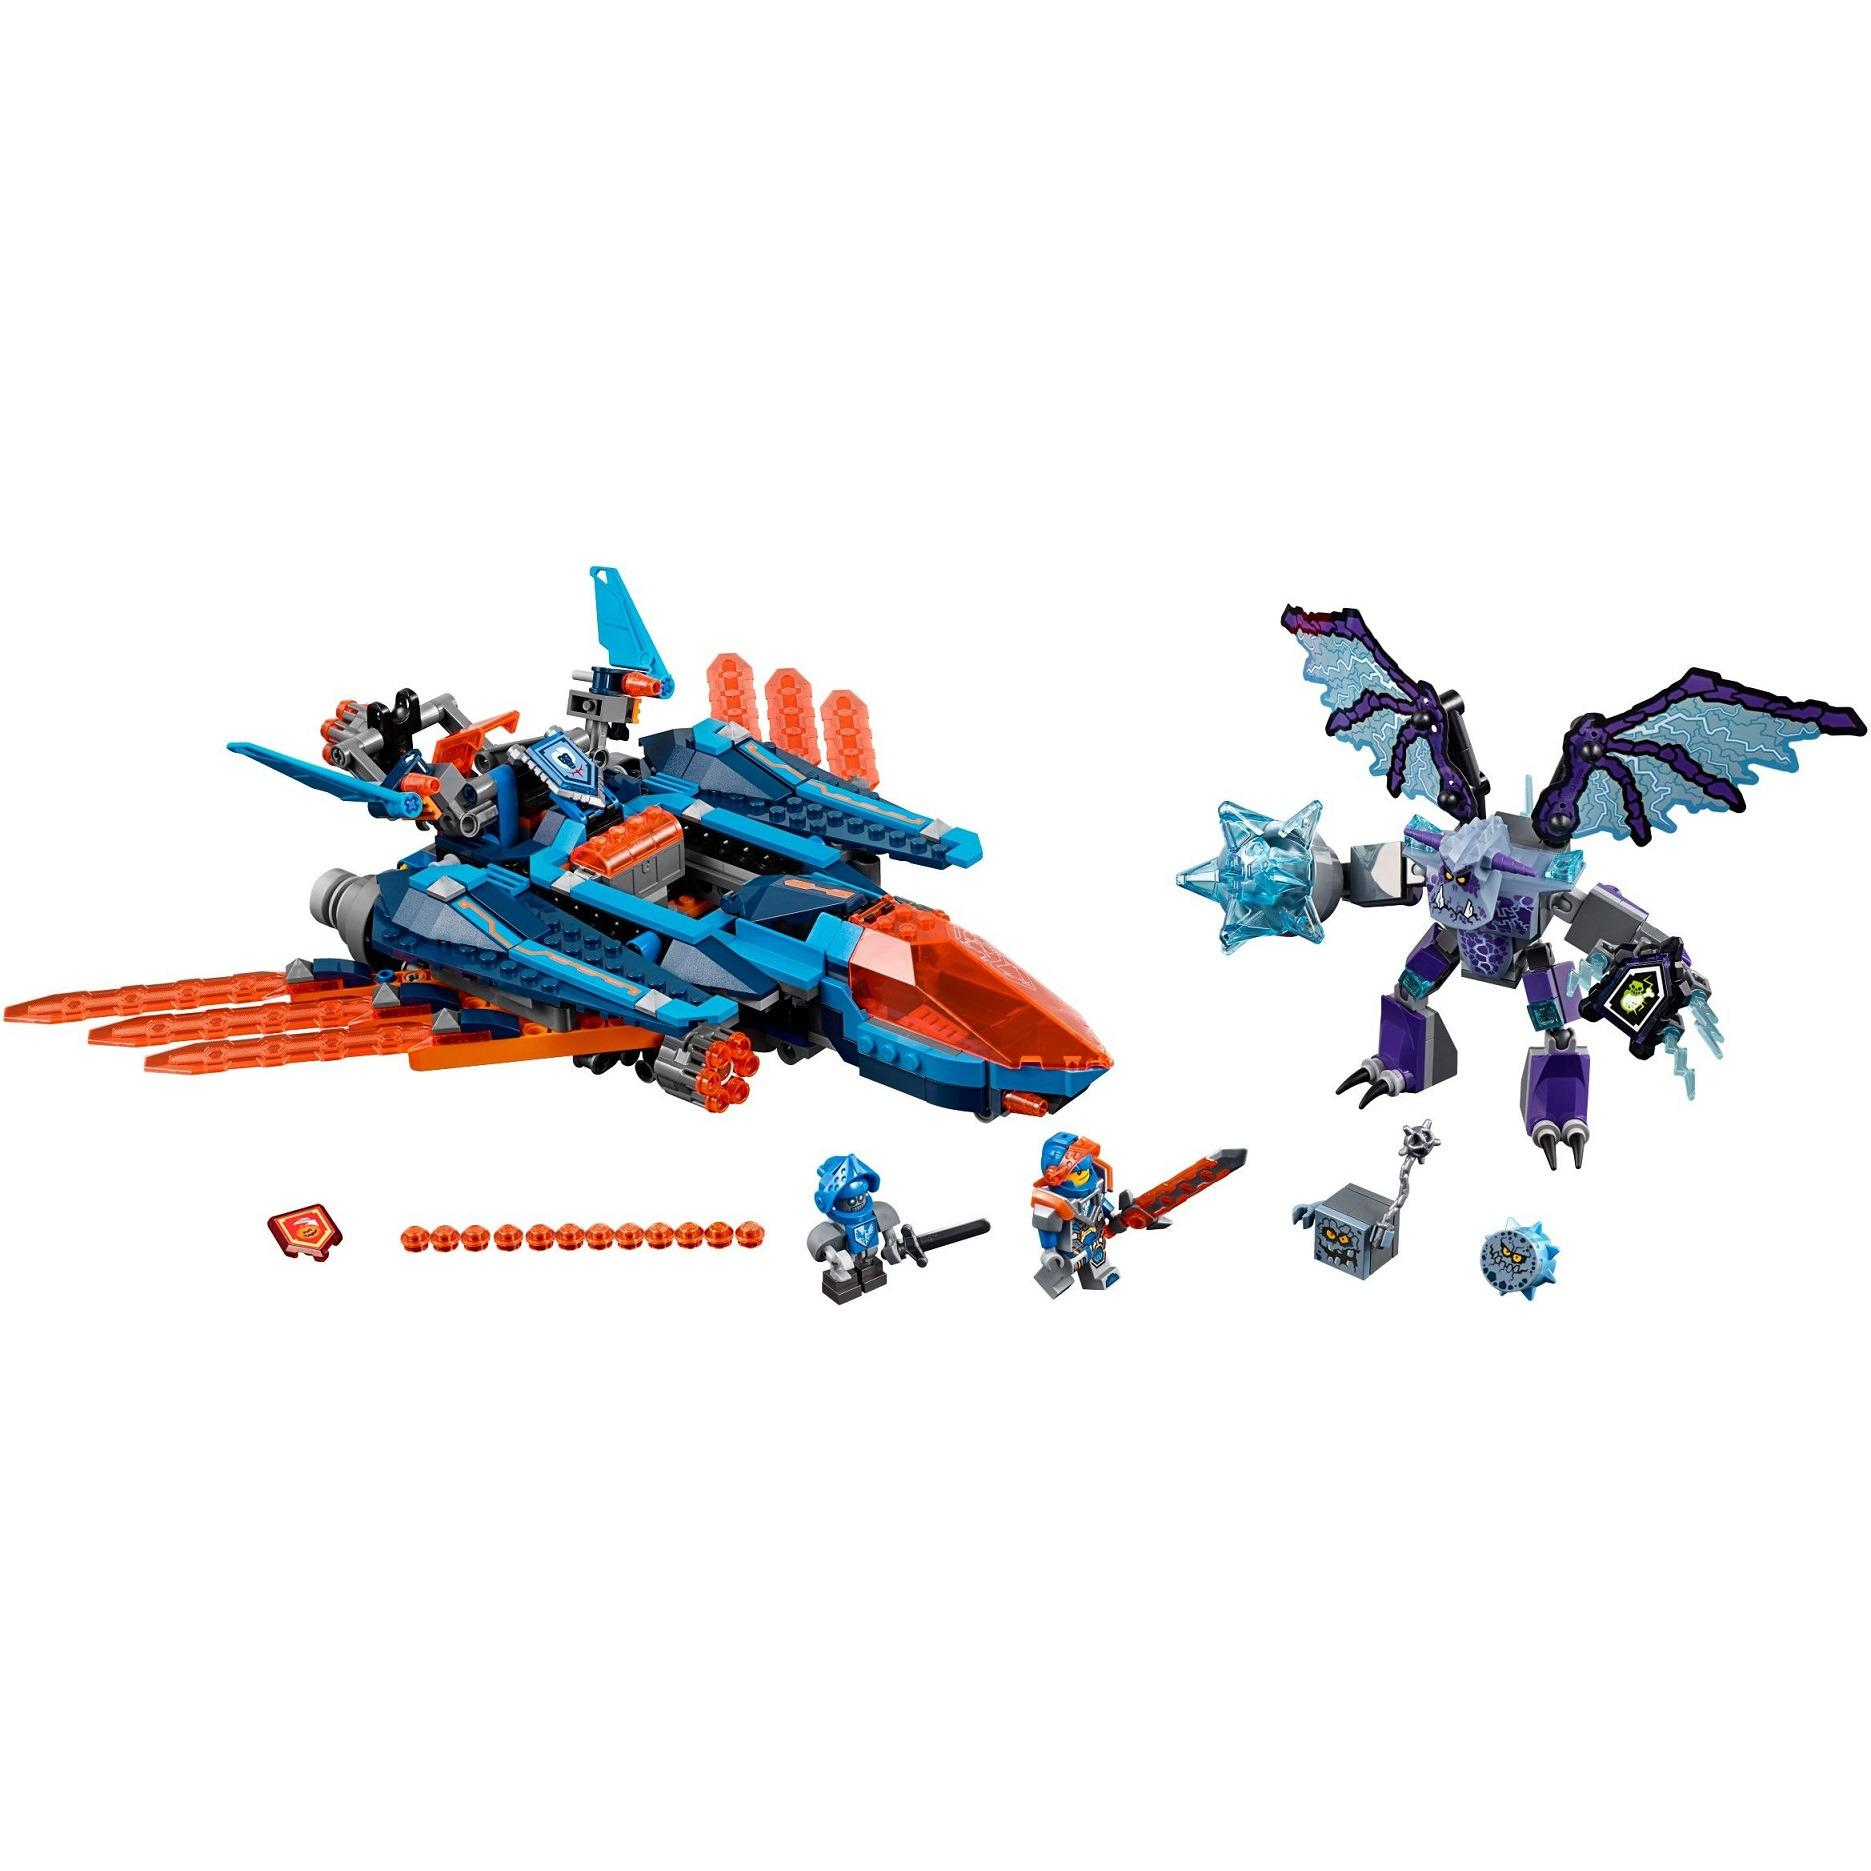 Detail Gambar Lego R Original NEXO KNIGHTS Clay s Falcon Fighter Blaster Terbaru